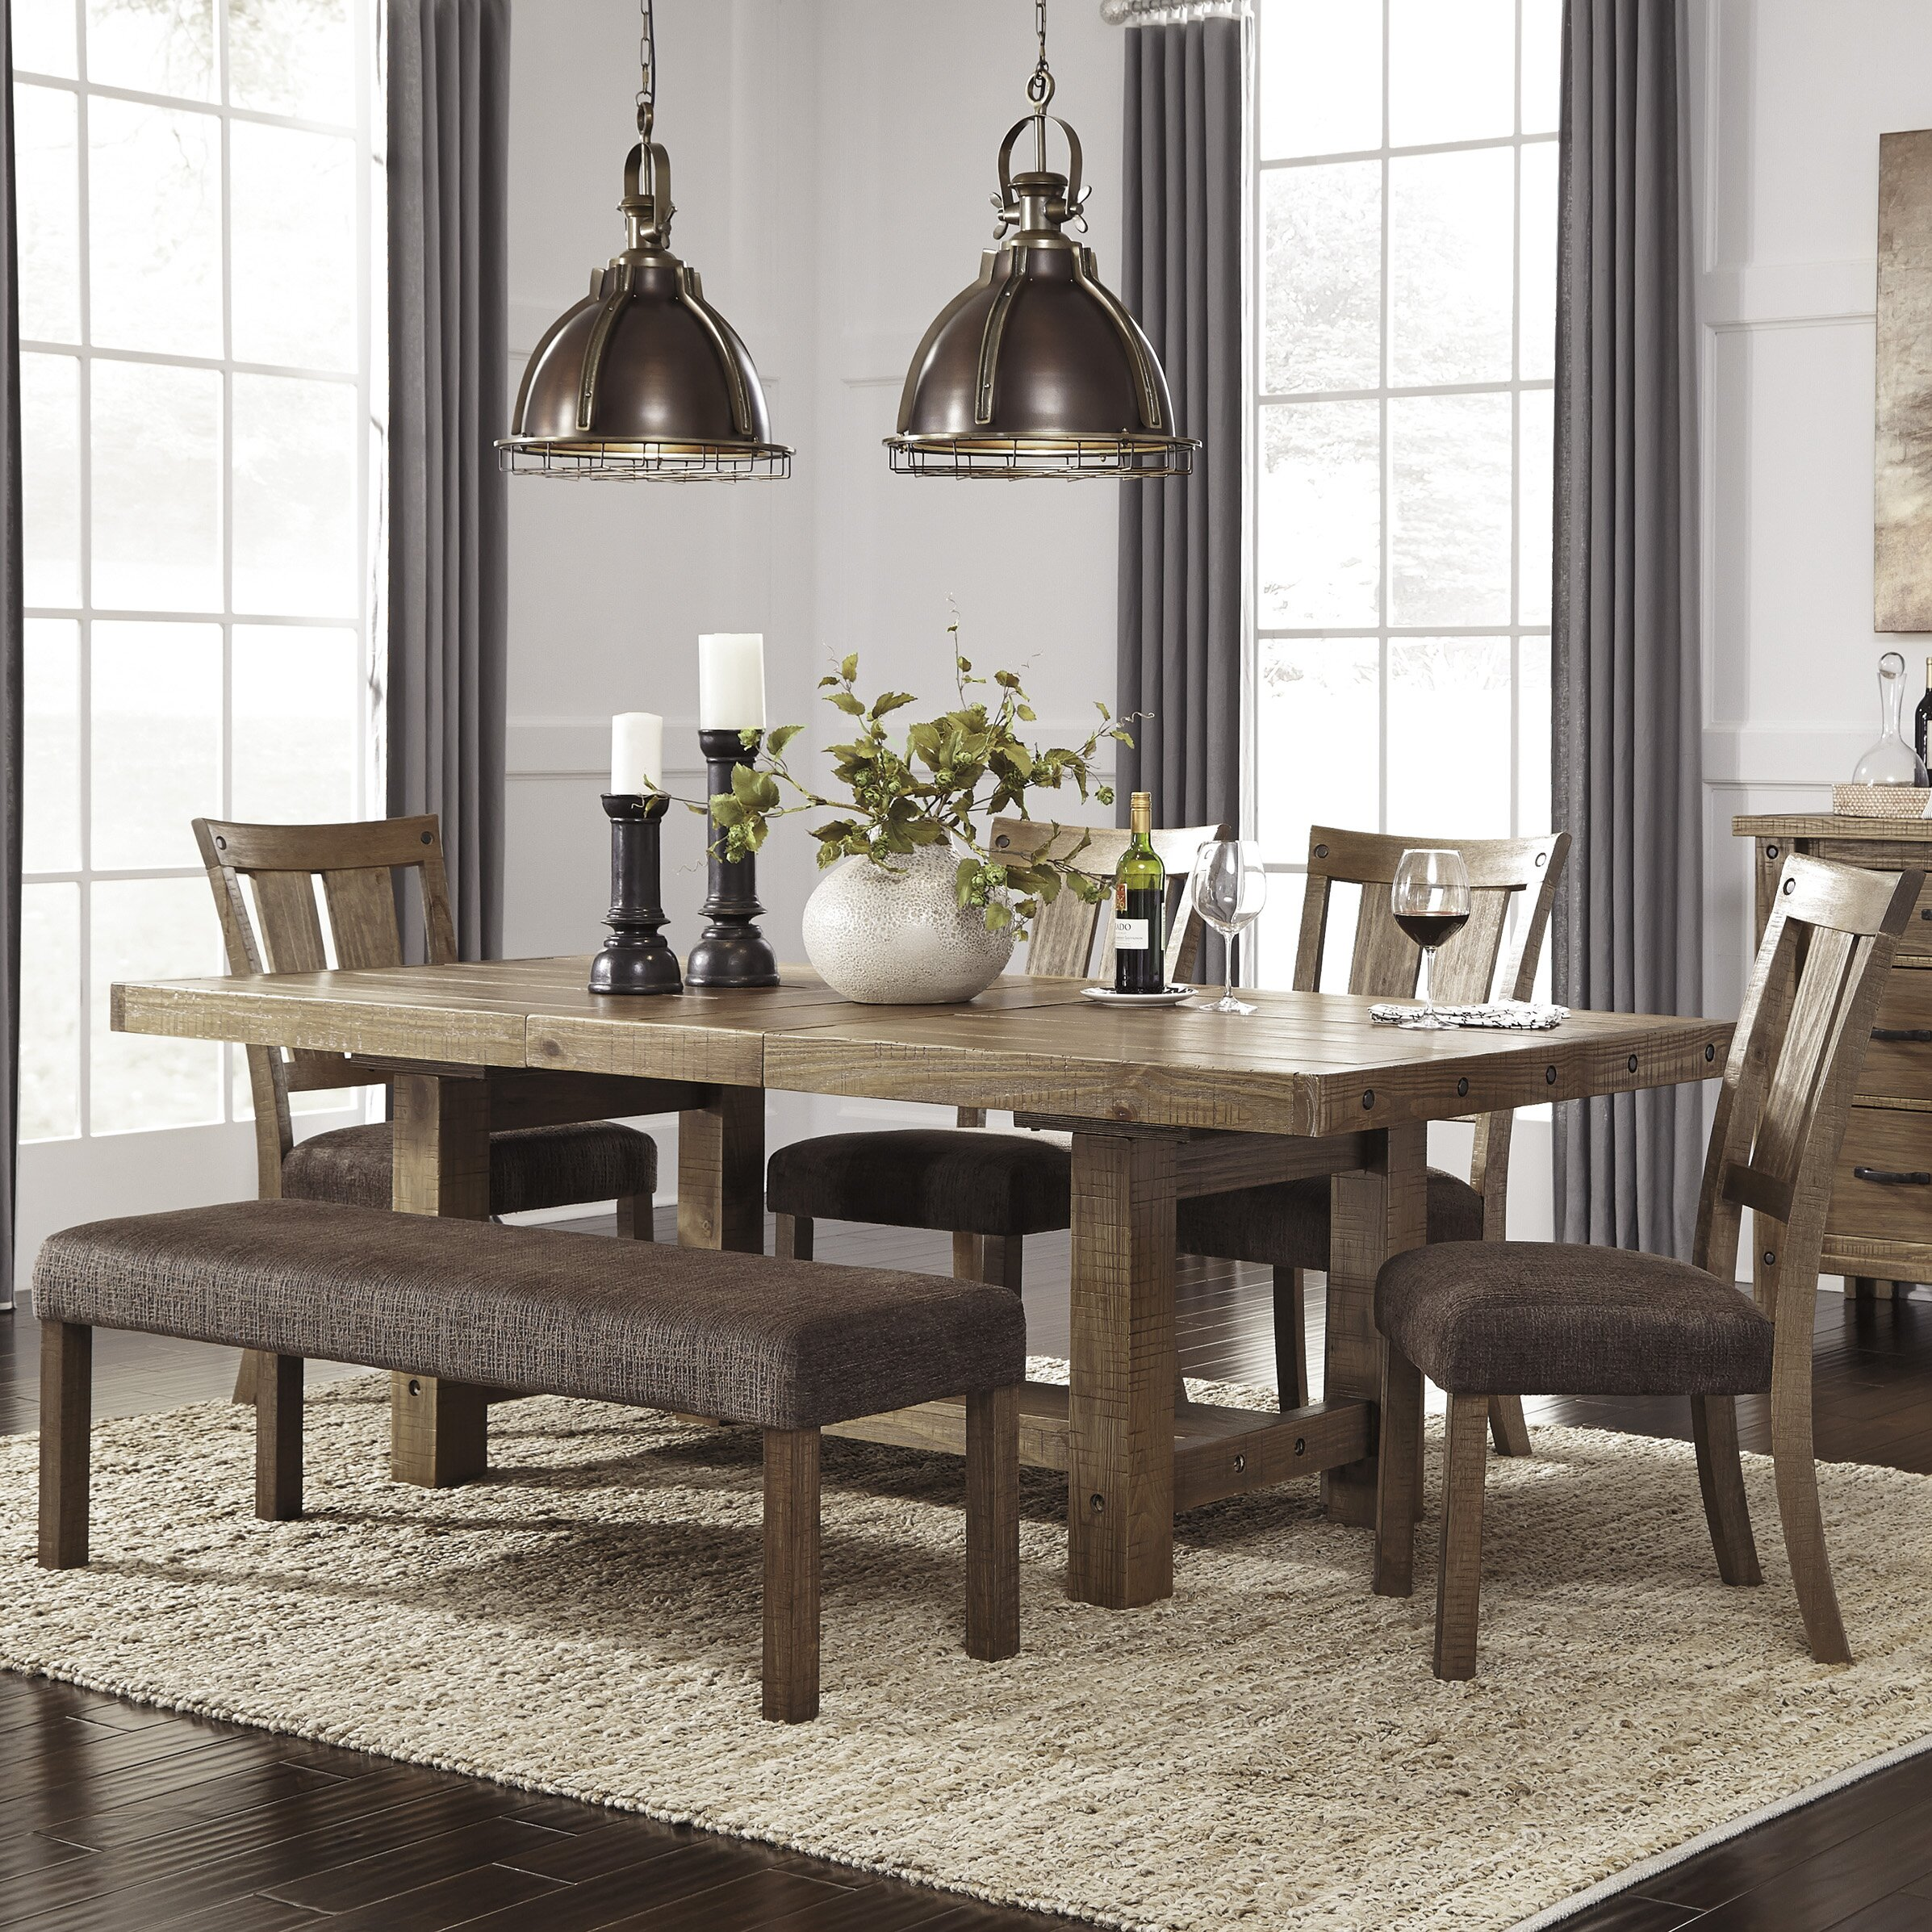 Signature design by ashley 9 piece dining set reviews for Dining set decoration